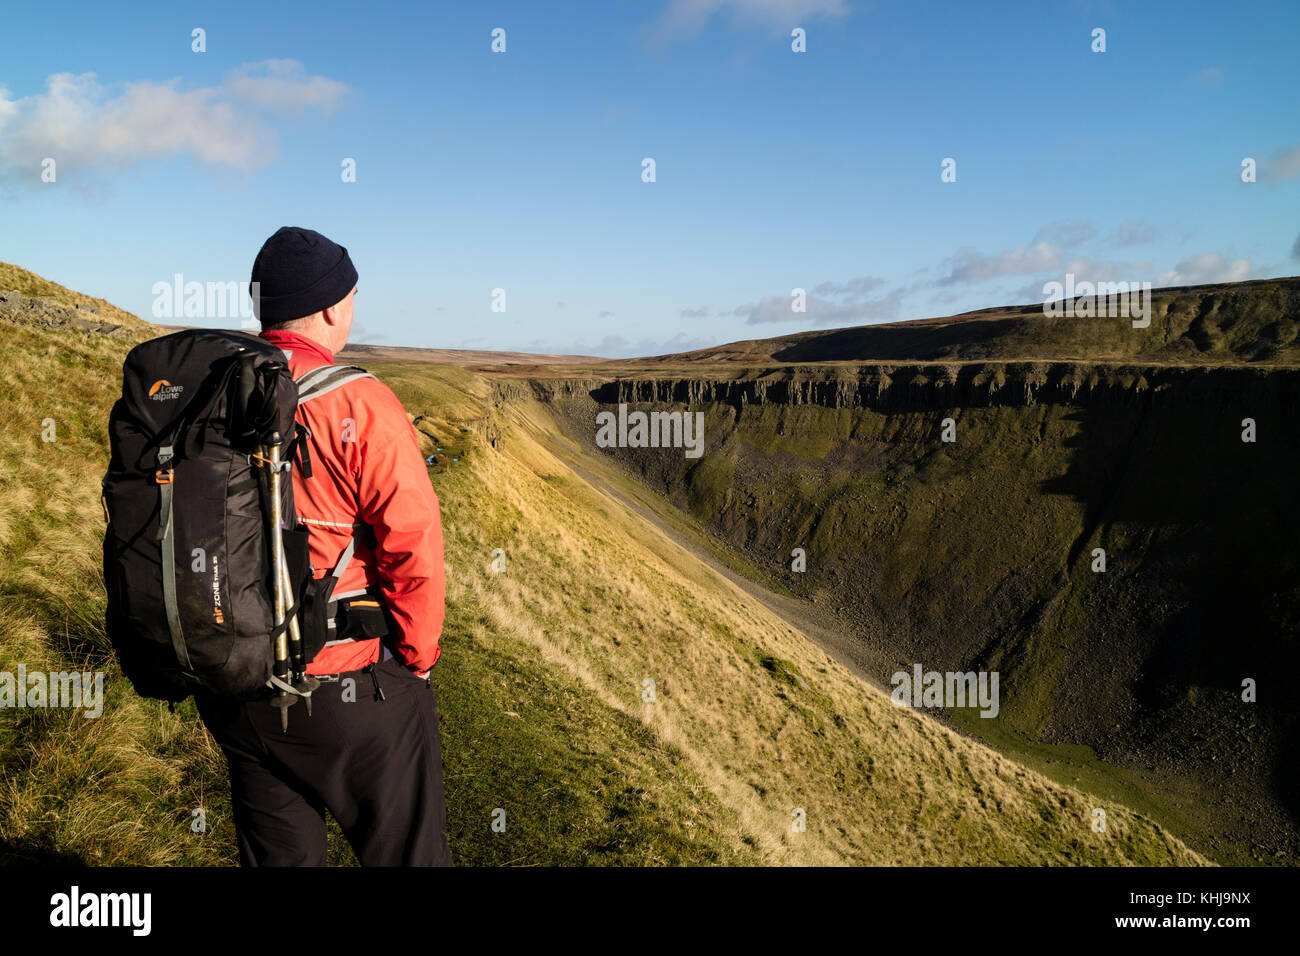 Hiker Viewing High Cup Nick from the Pennine Way, Cumbria, UK	 - Stock Image